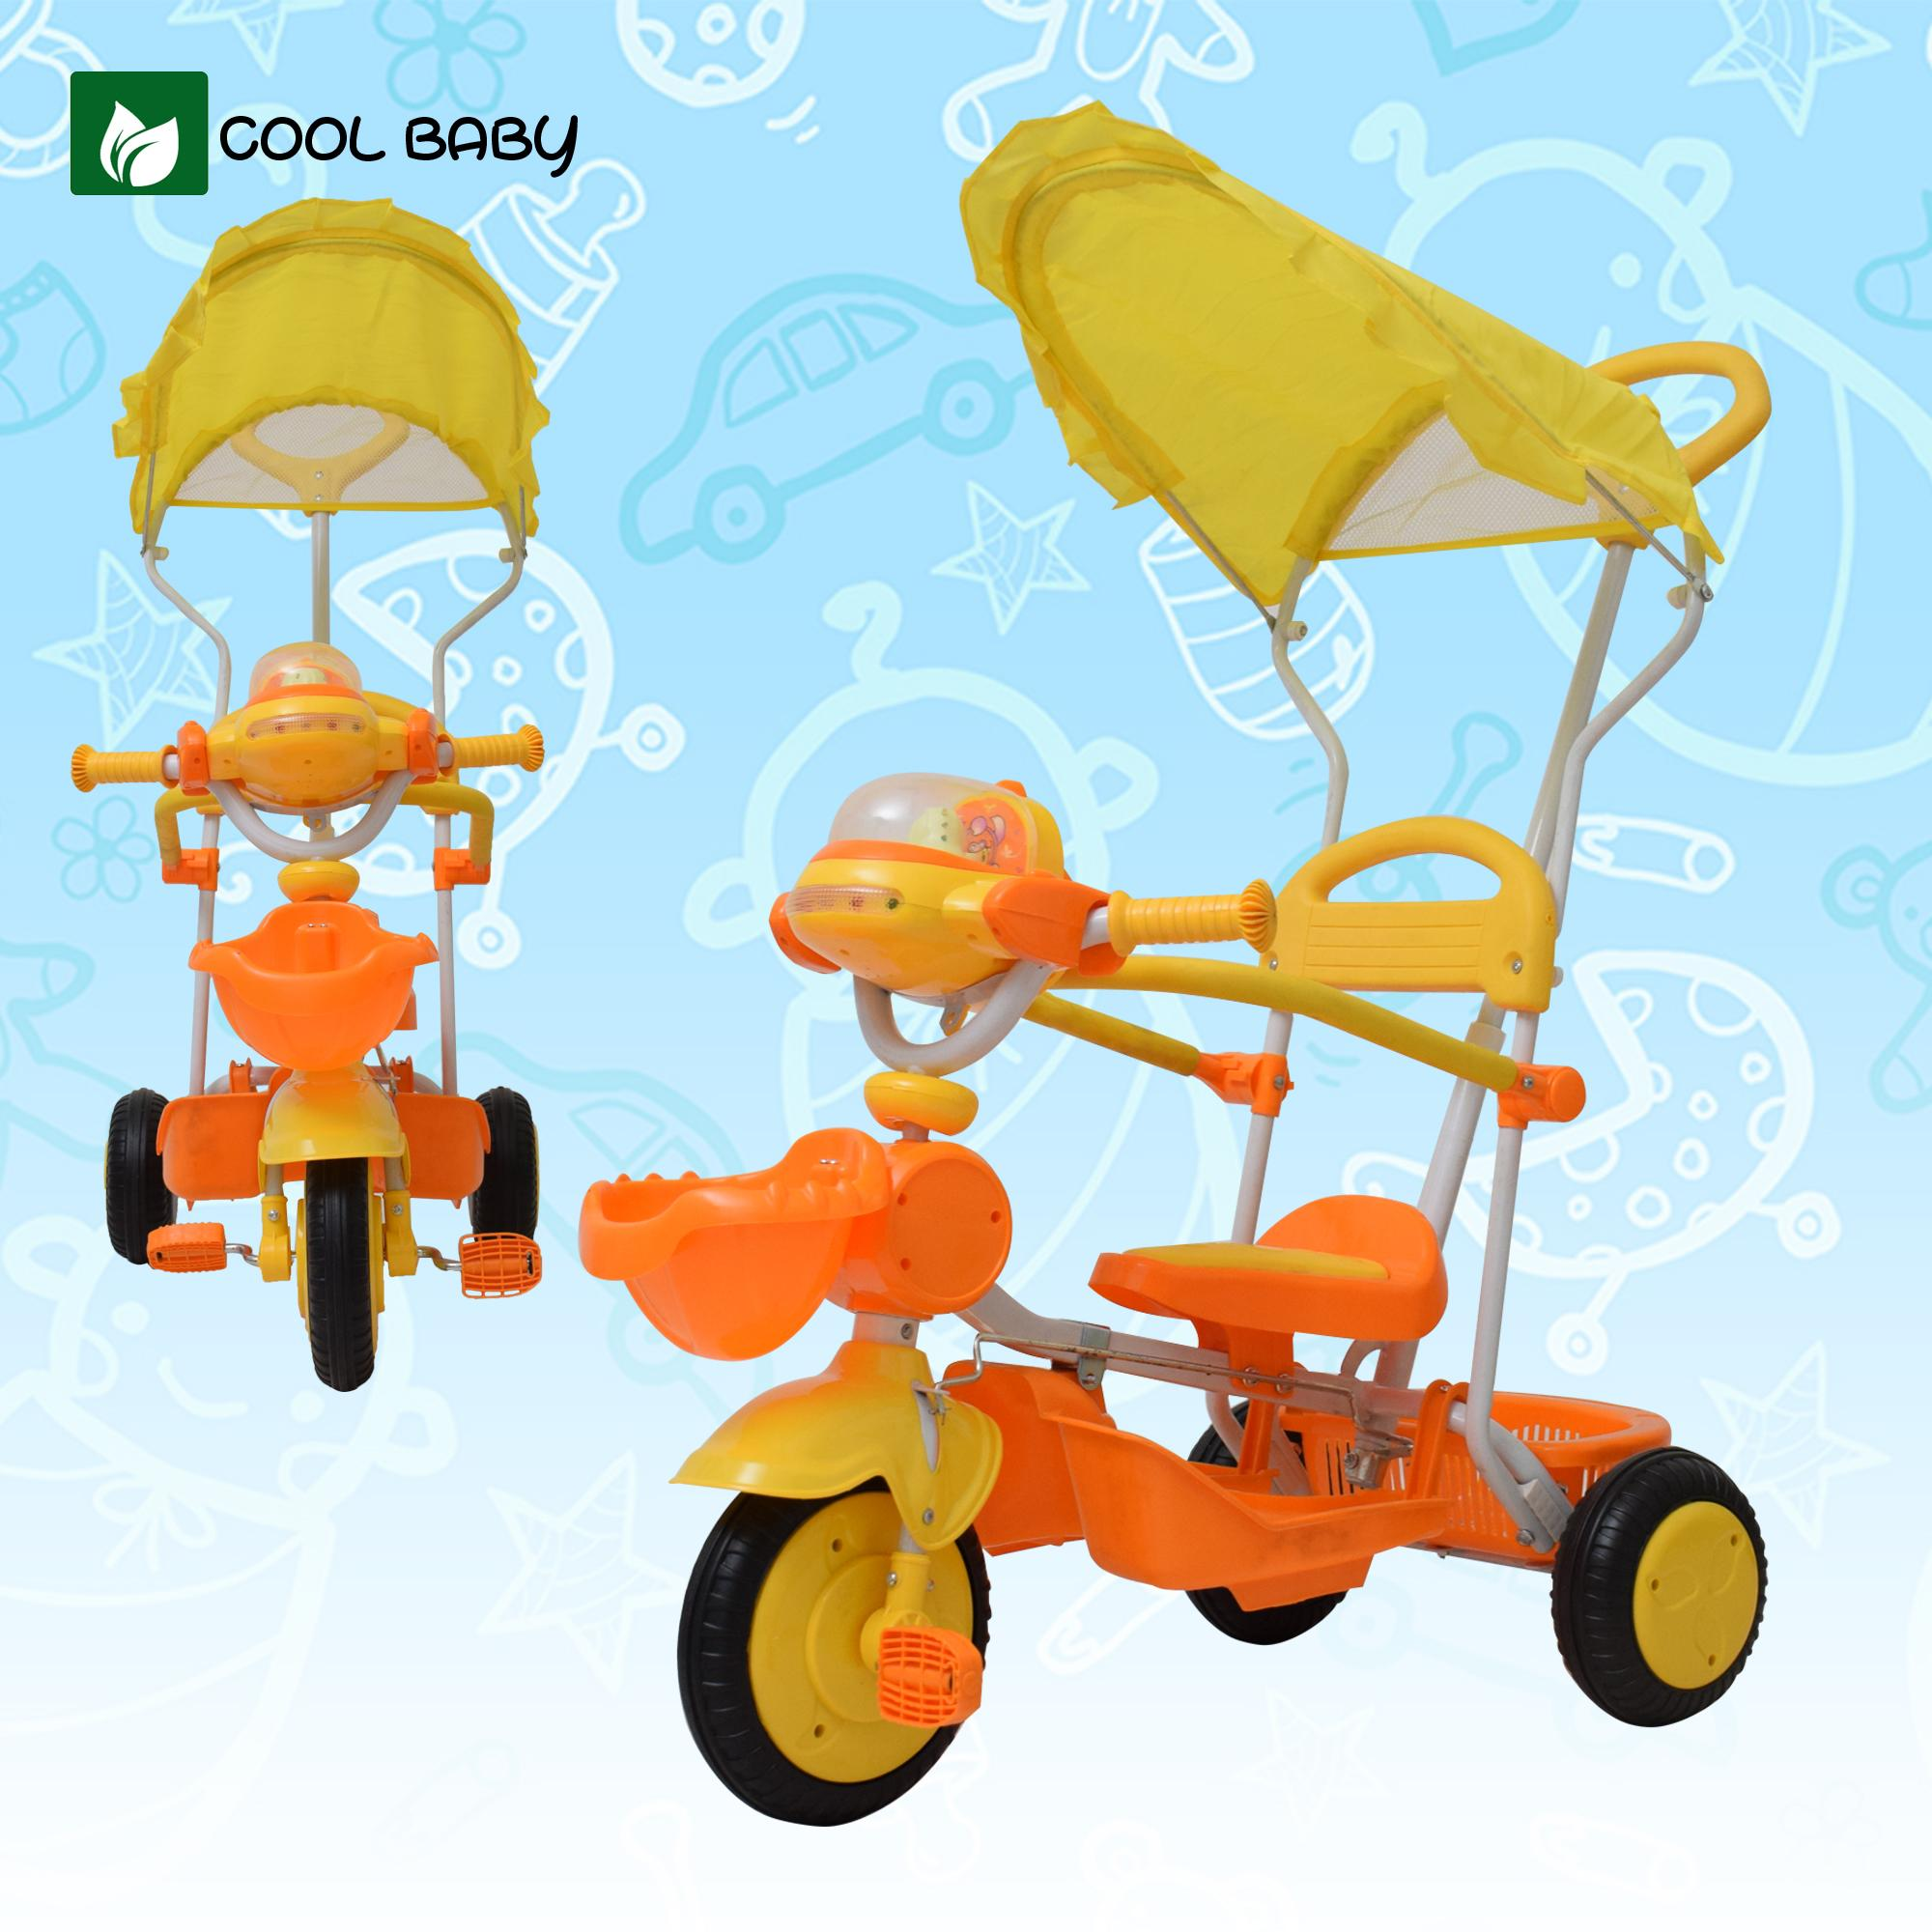 Cool Baby 204 Kids Tricycle Bike By Cool Baby.